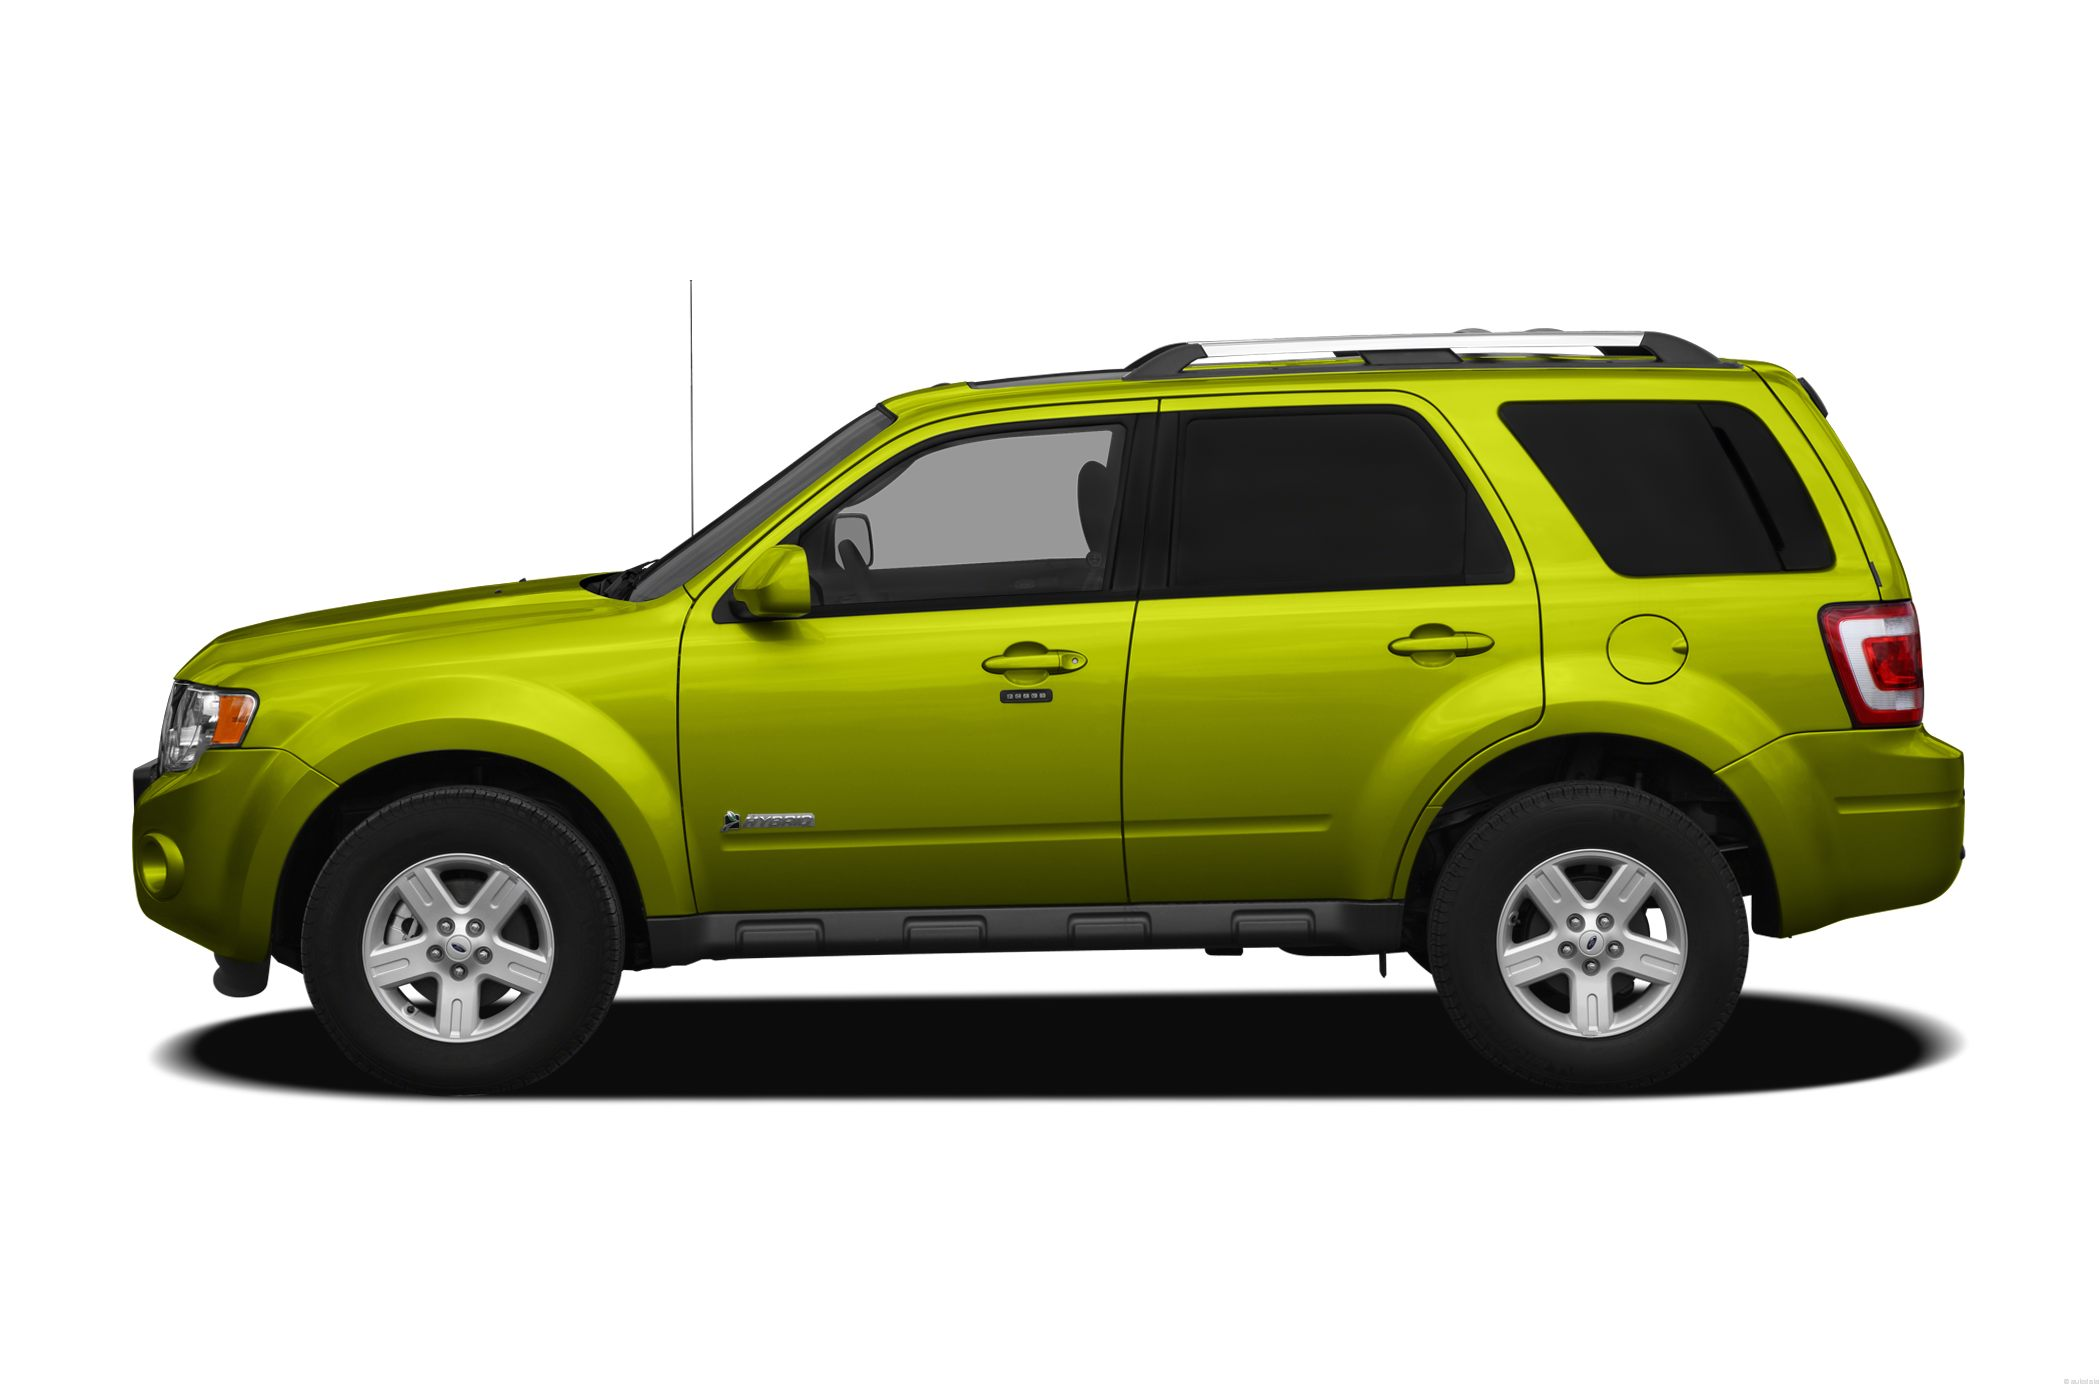 FORD ESCAPE Image - Ford escape invoice price